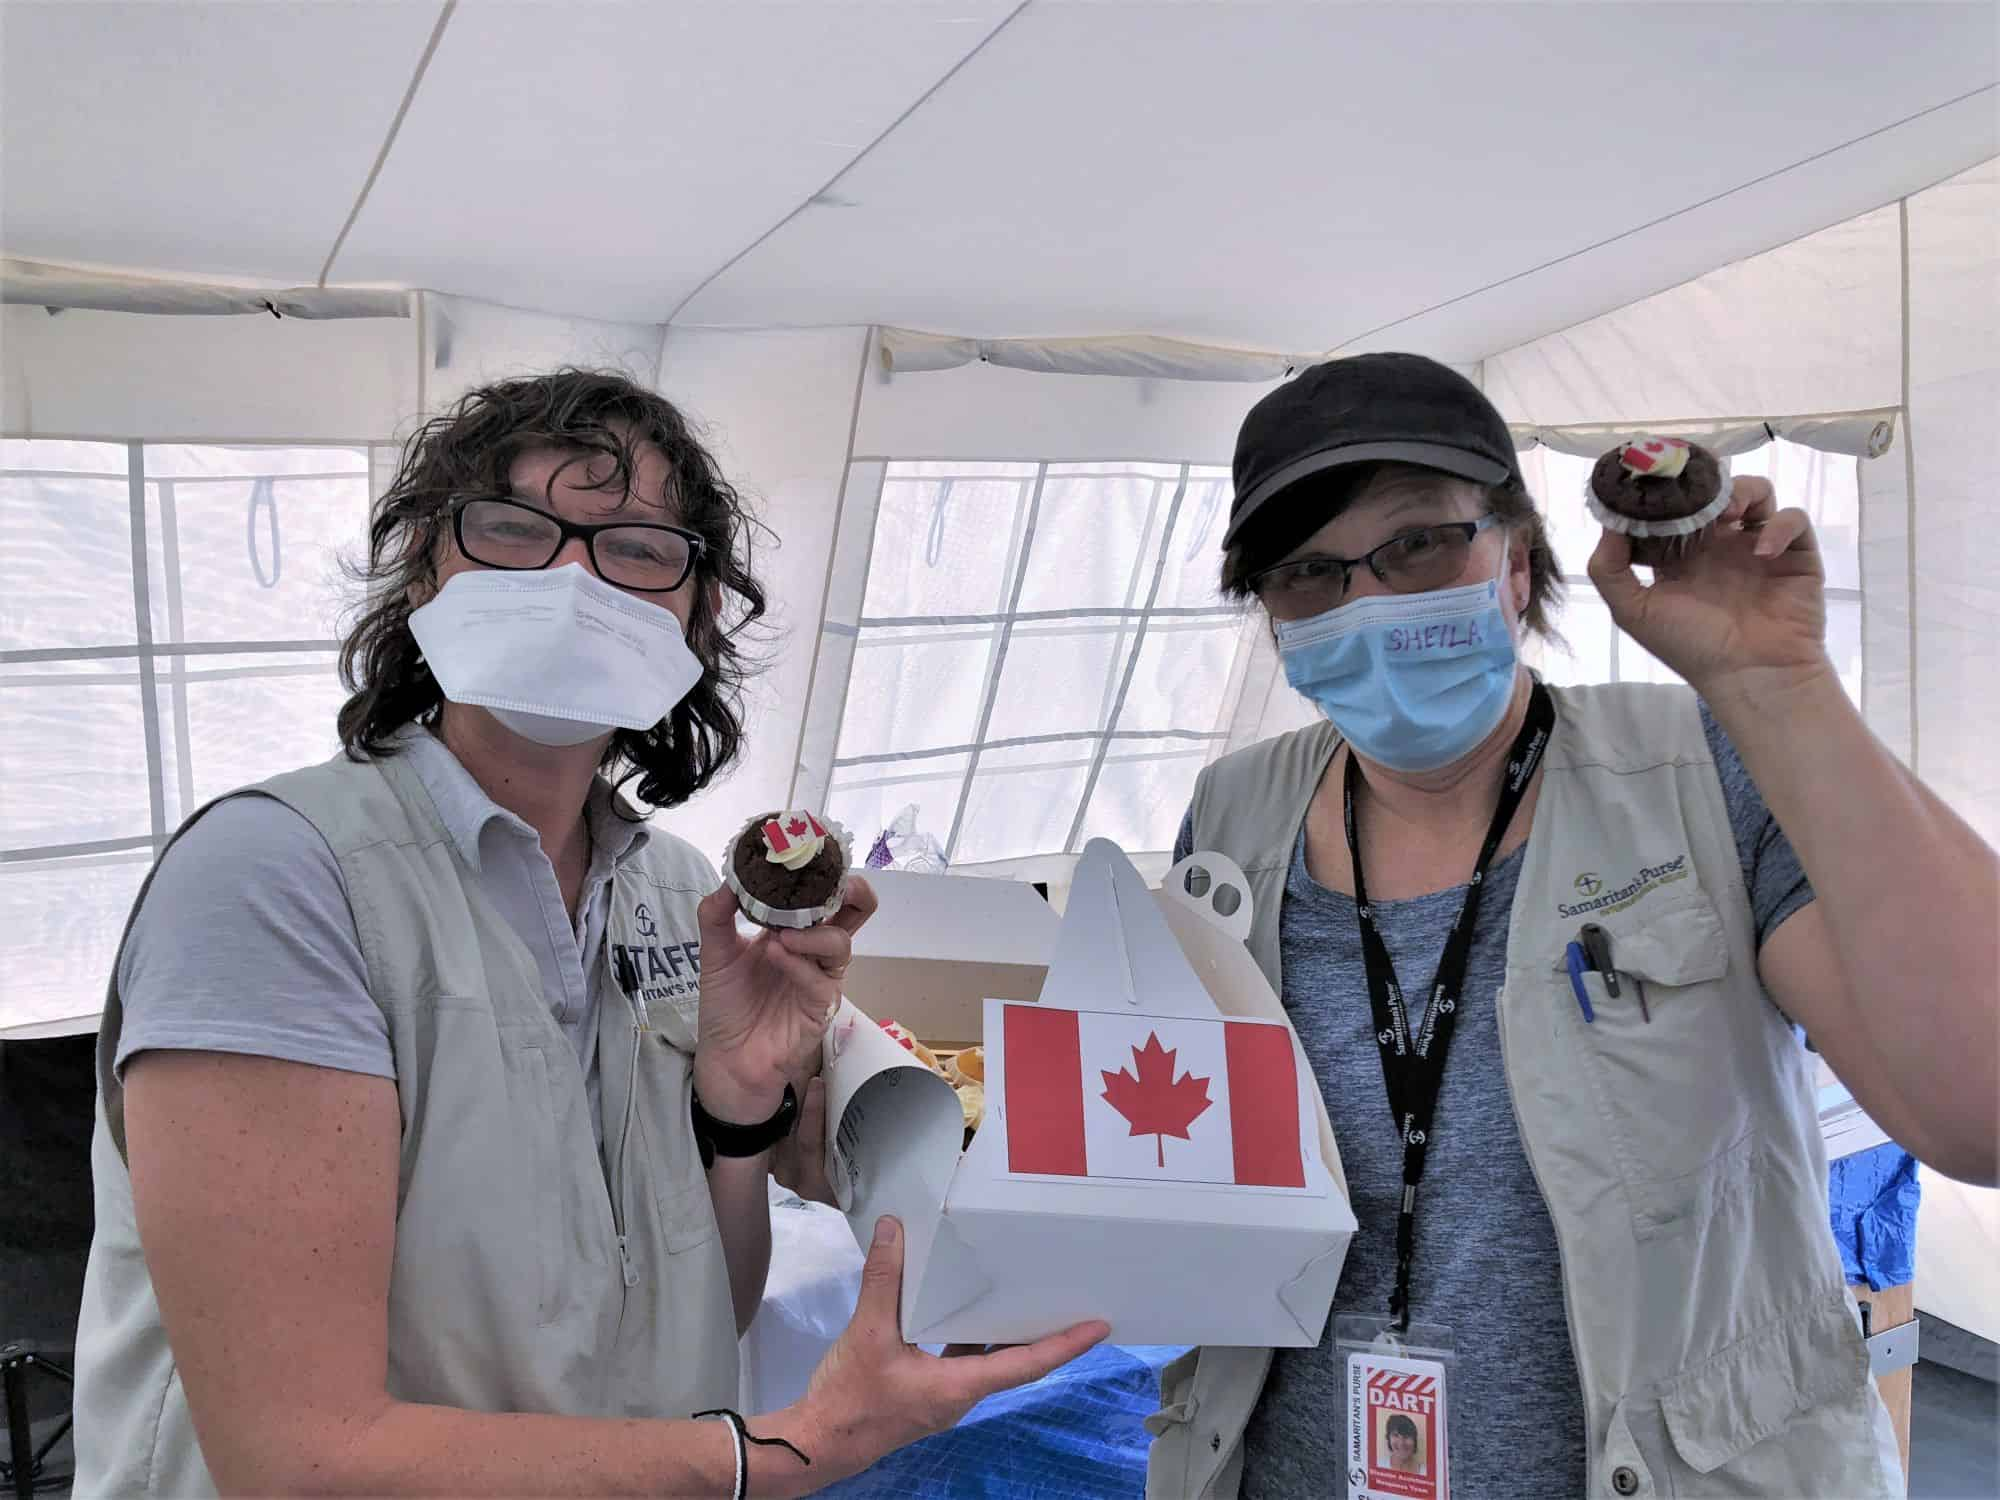 The Ambassador of Canada to Italy sent a special treat to our Canadian staff working at the Emergency Field Hospital in Italy. They loved them!